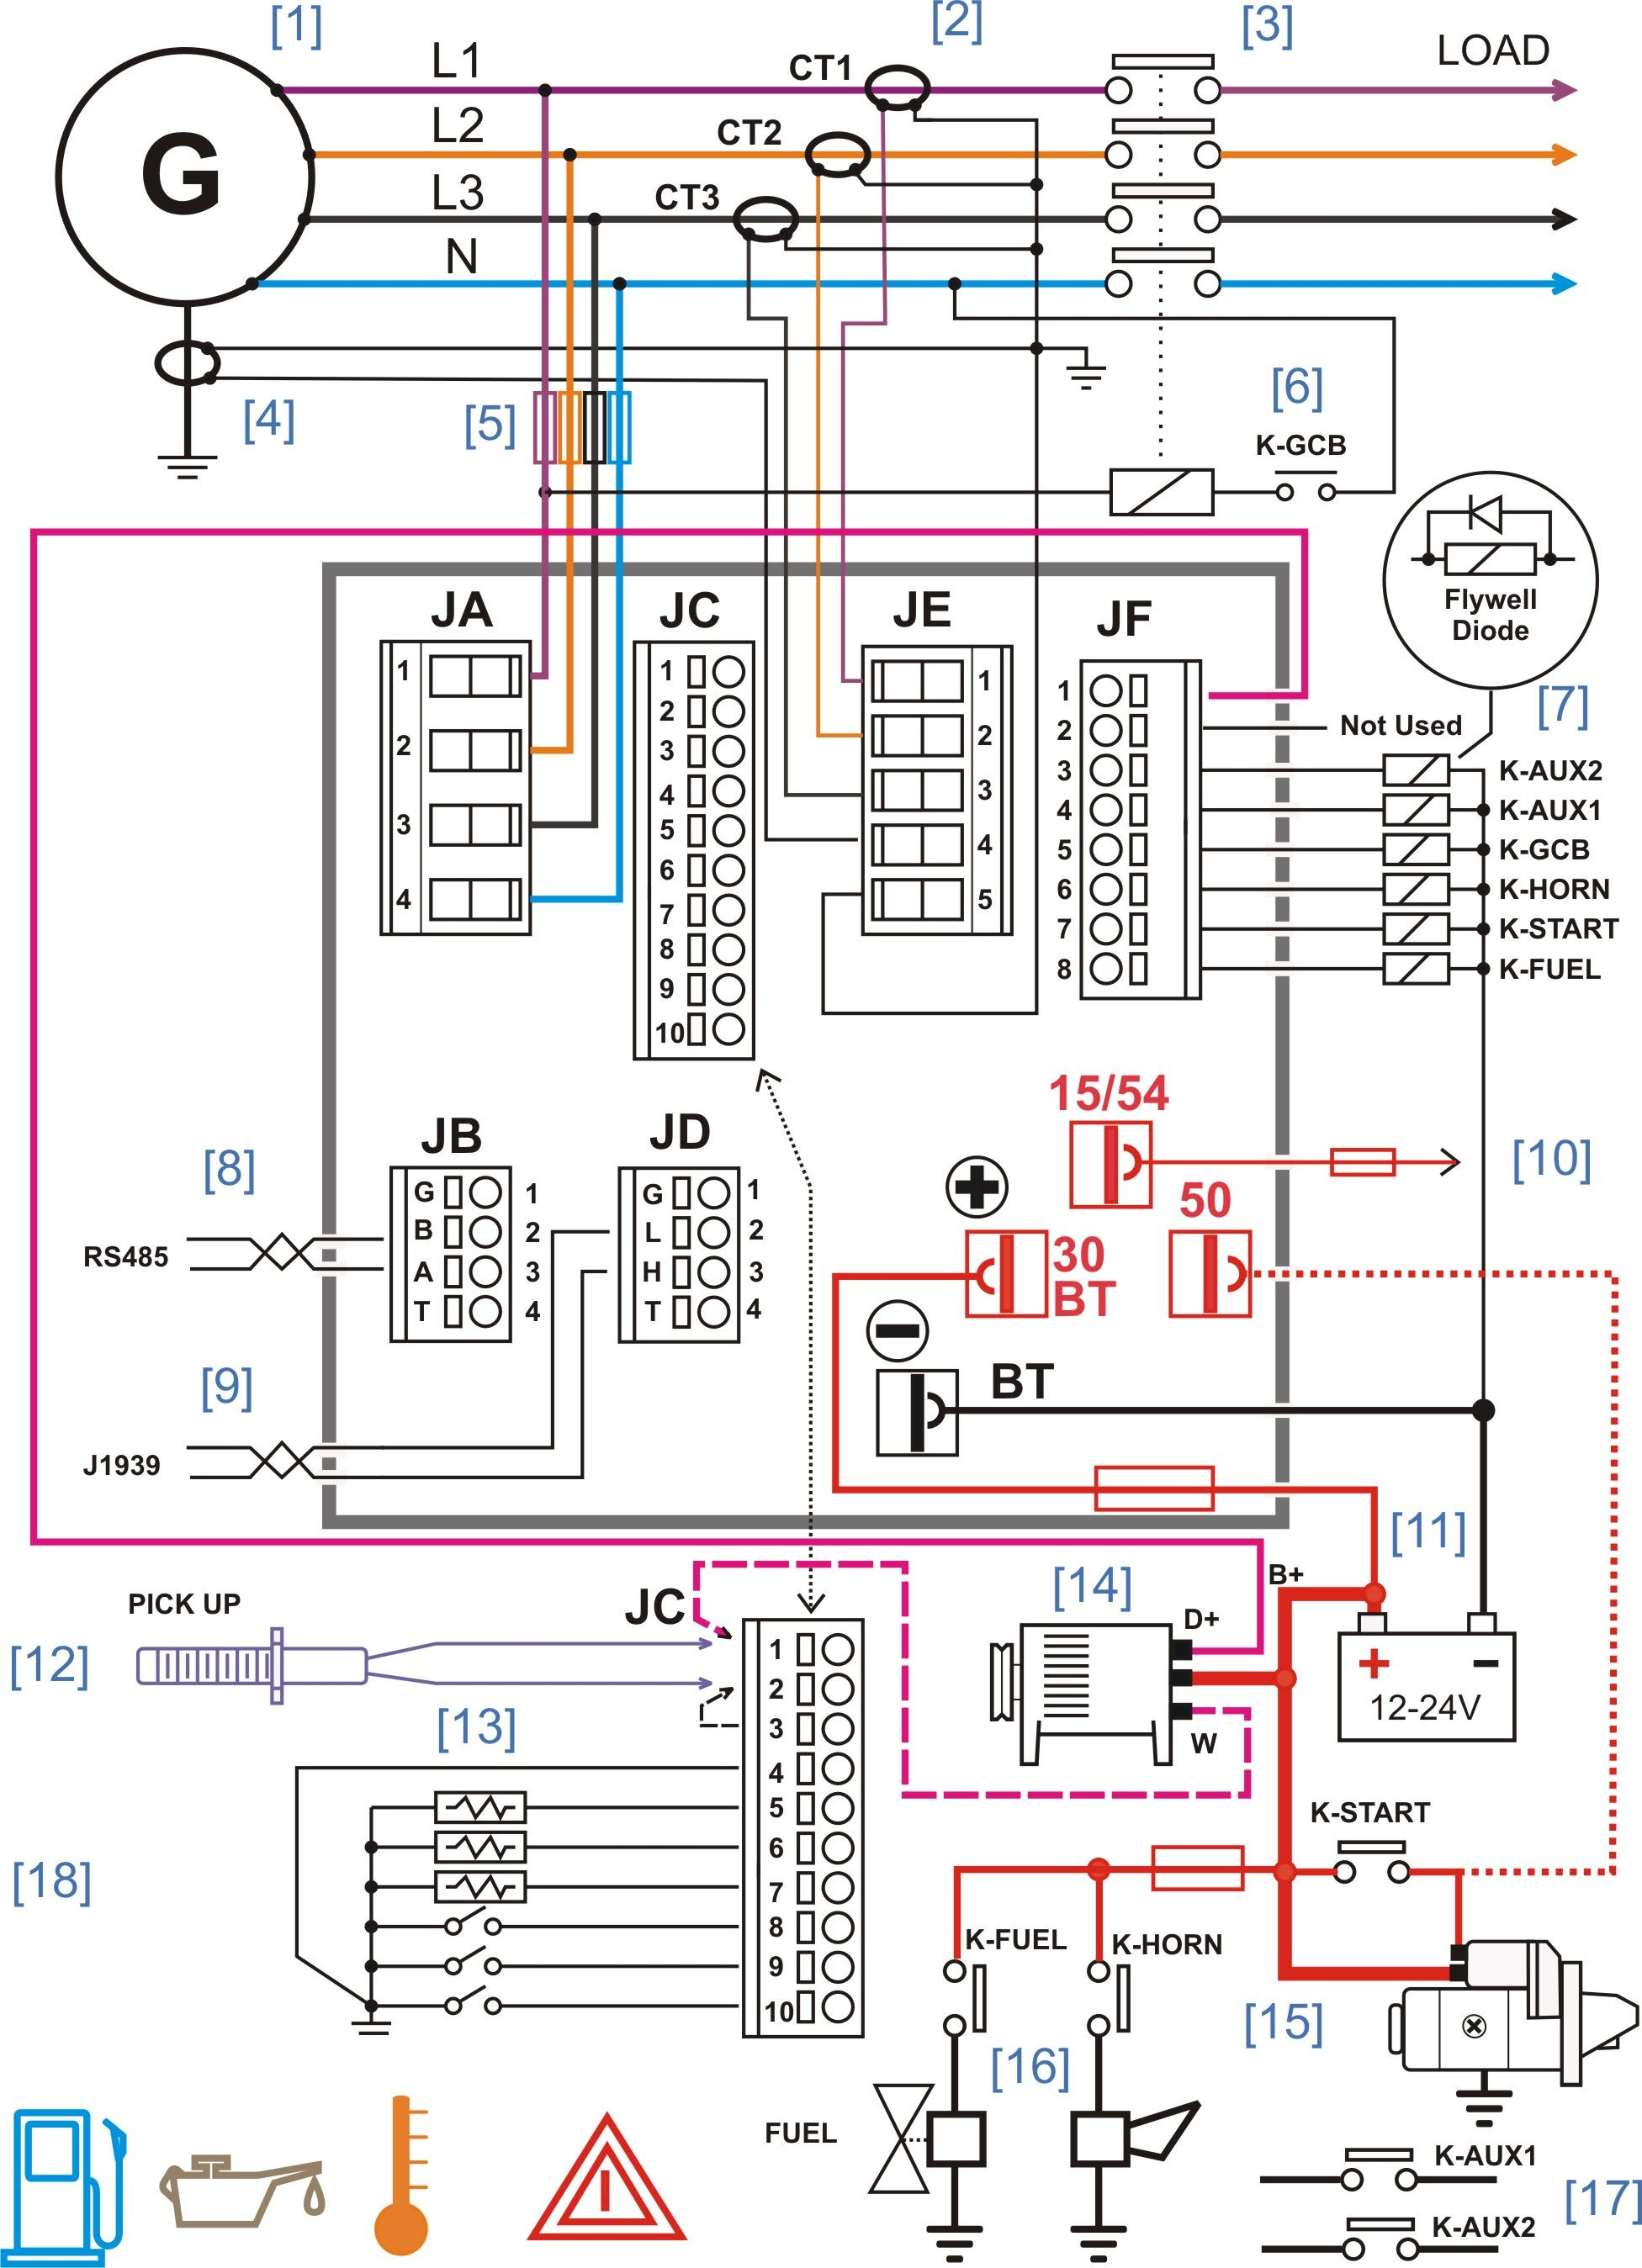 medium resolution of diesel generator control panel wiring diagram diesel generators in ups panel wiring diagram plc panel wiring